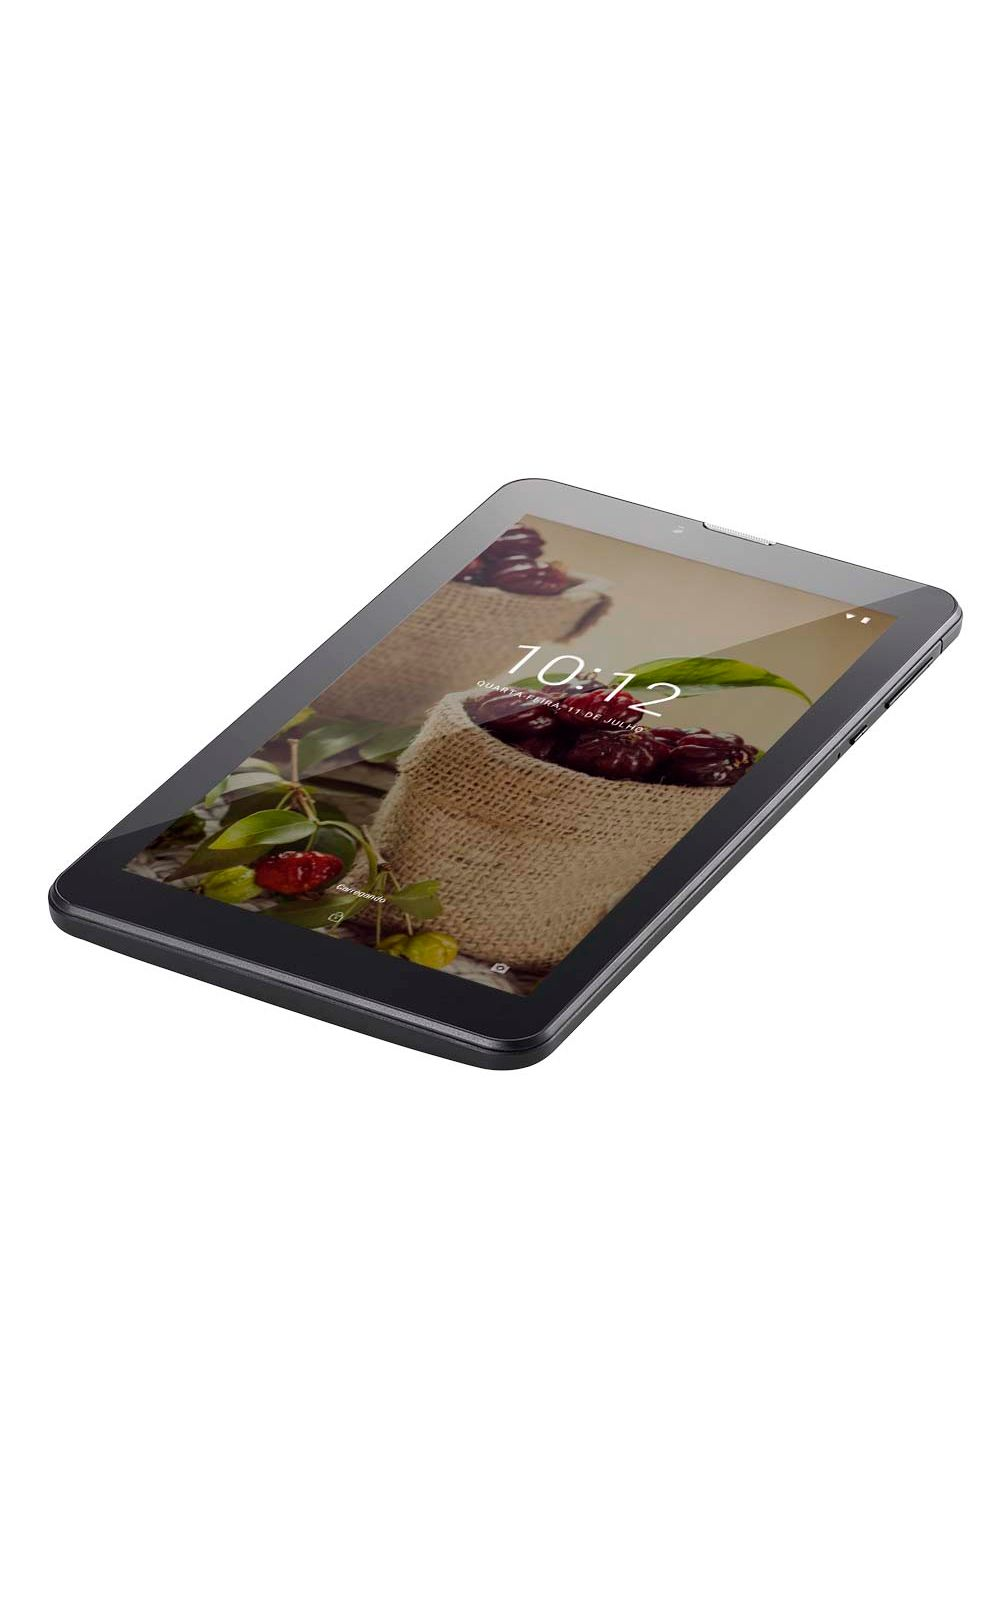 Foto 6 - Tablet Multilaser M7 3G Plus Sênior 1GB 8GB Câmera 2.0 Mp+1.3 Mp Tela 7 Dual Chip Preto - NB294